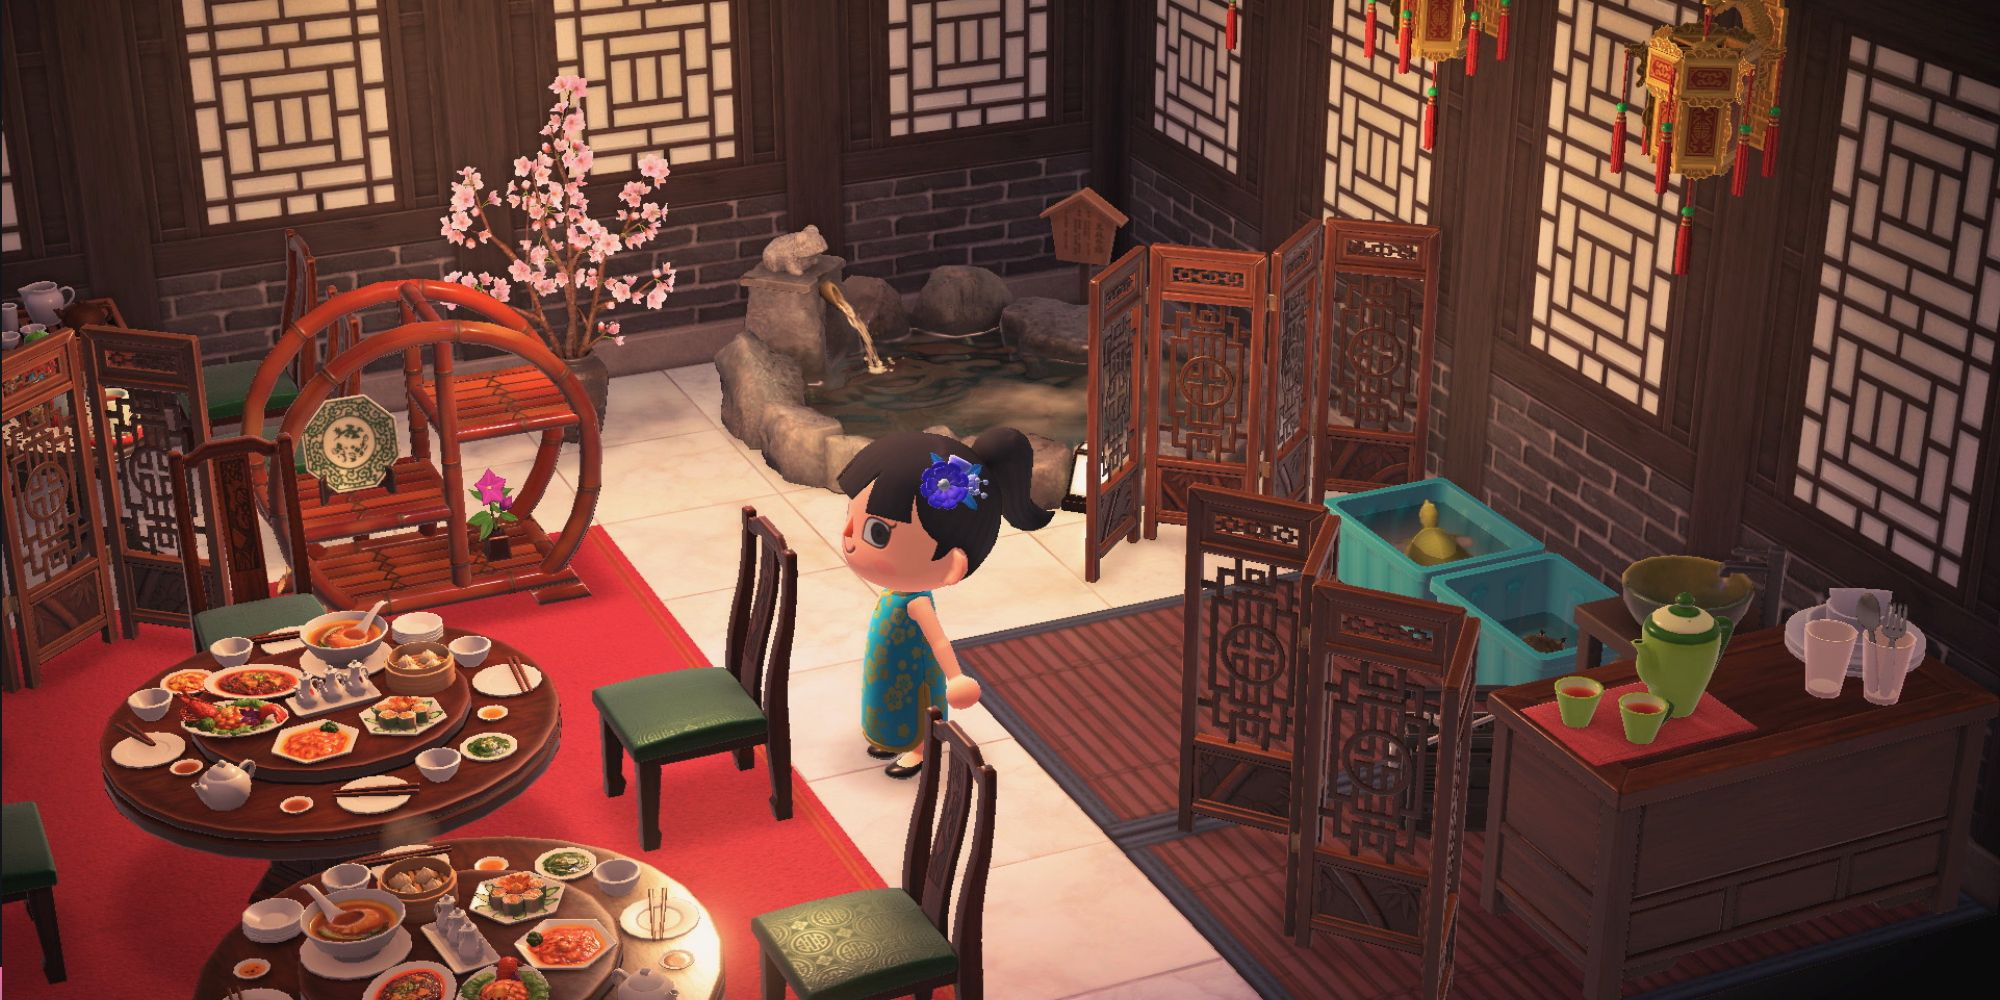 Asian Inspired Design Ideas Tips In Animal Crossing New Horizons